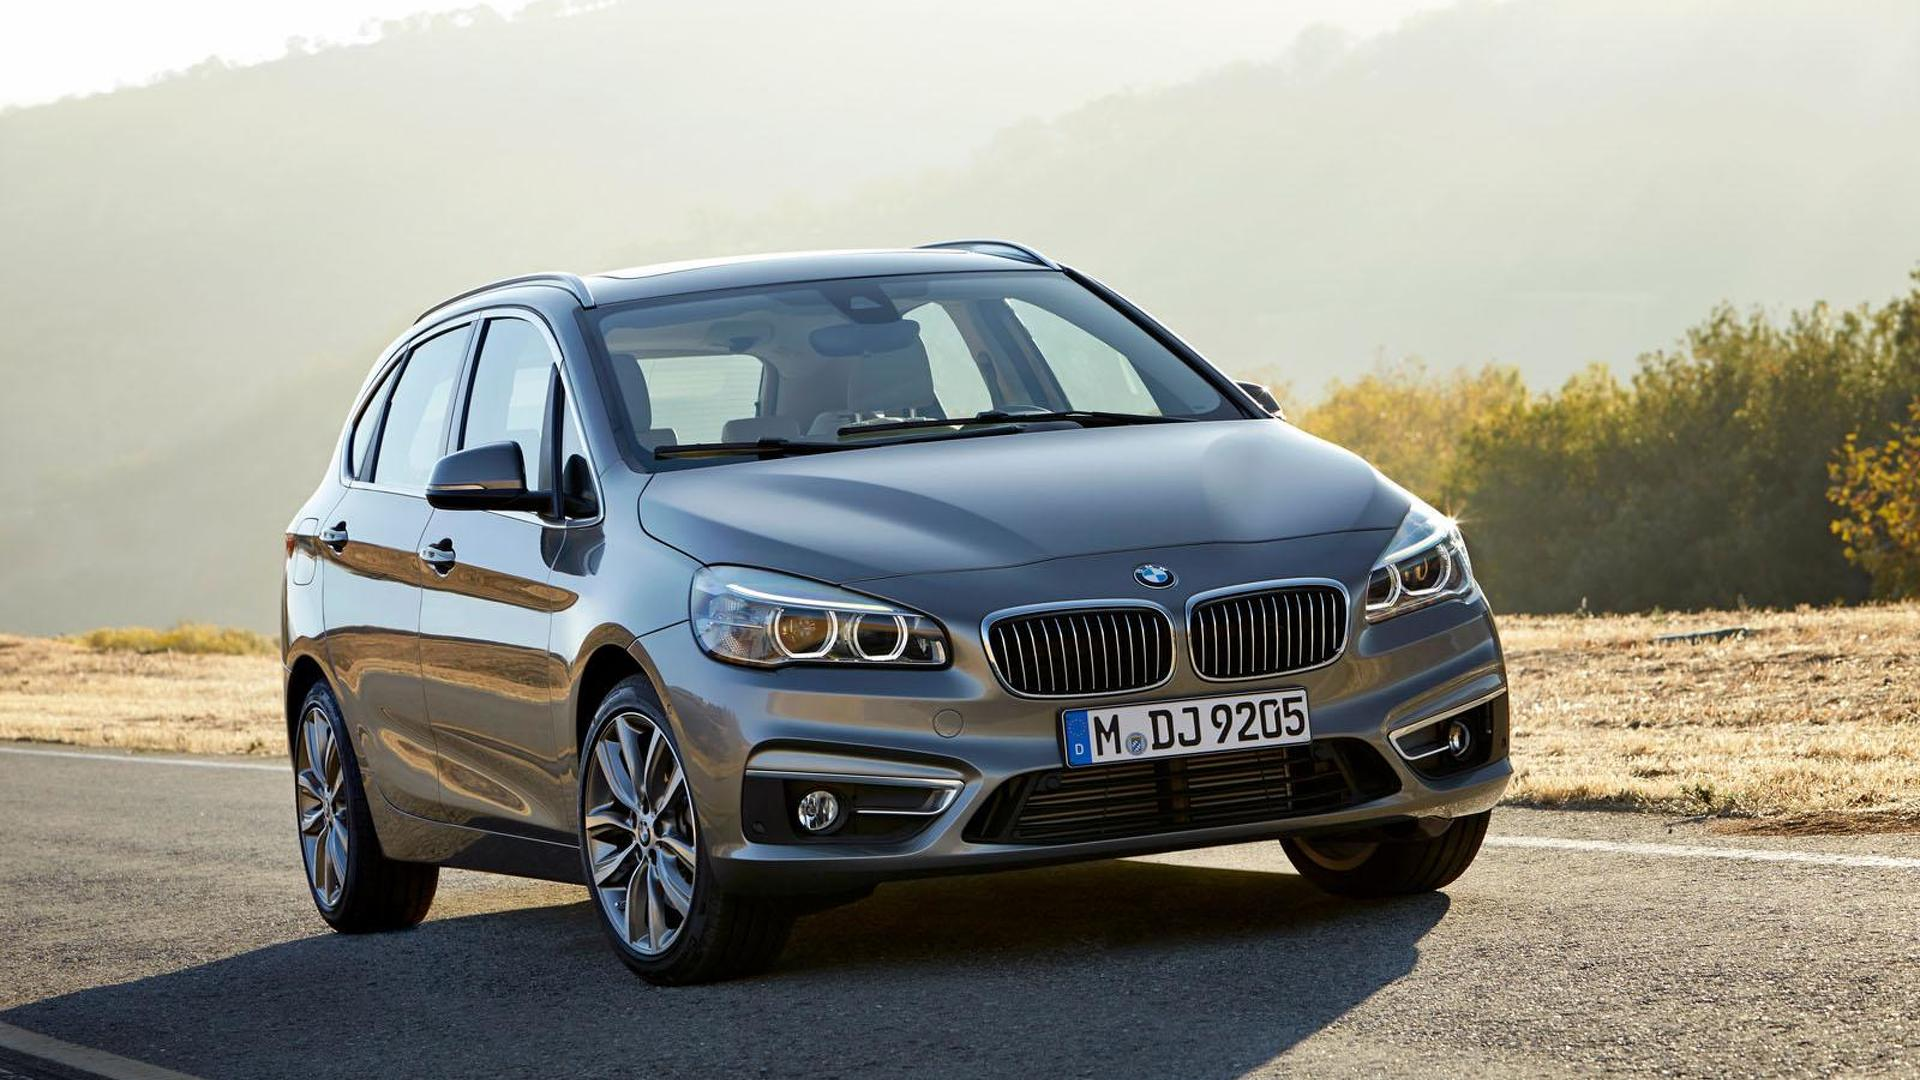 BMW has low expectations for the 2-Series Active Tourer in the U.S. - report